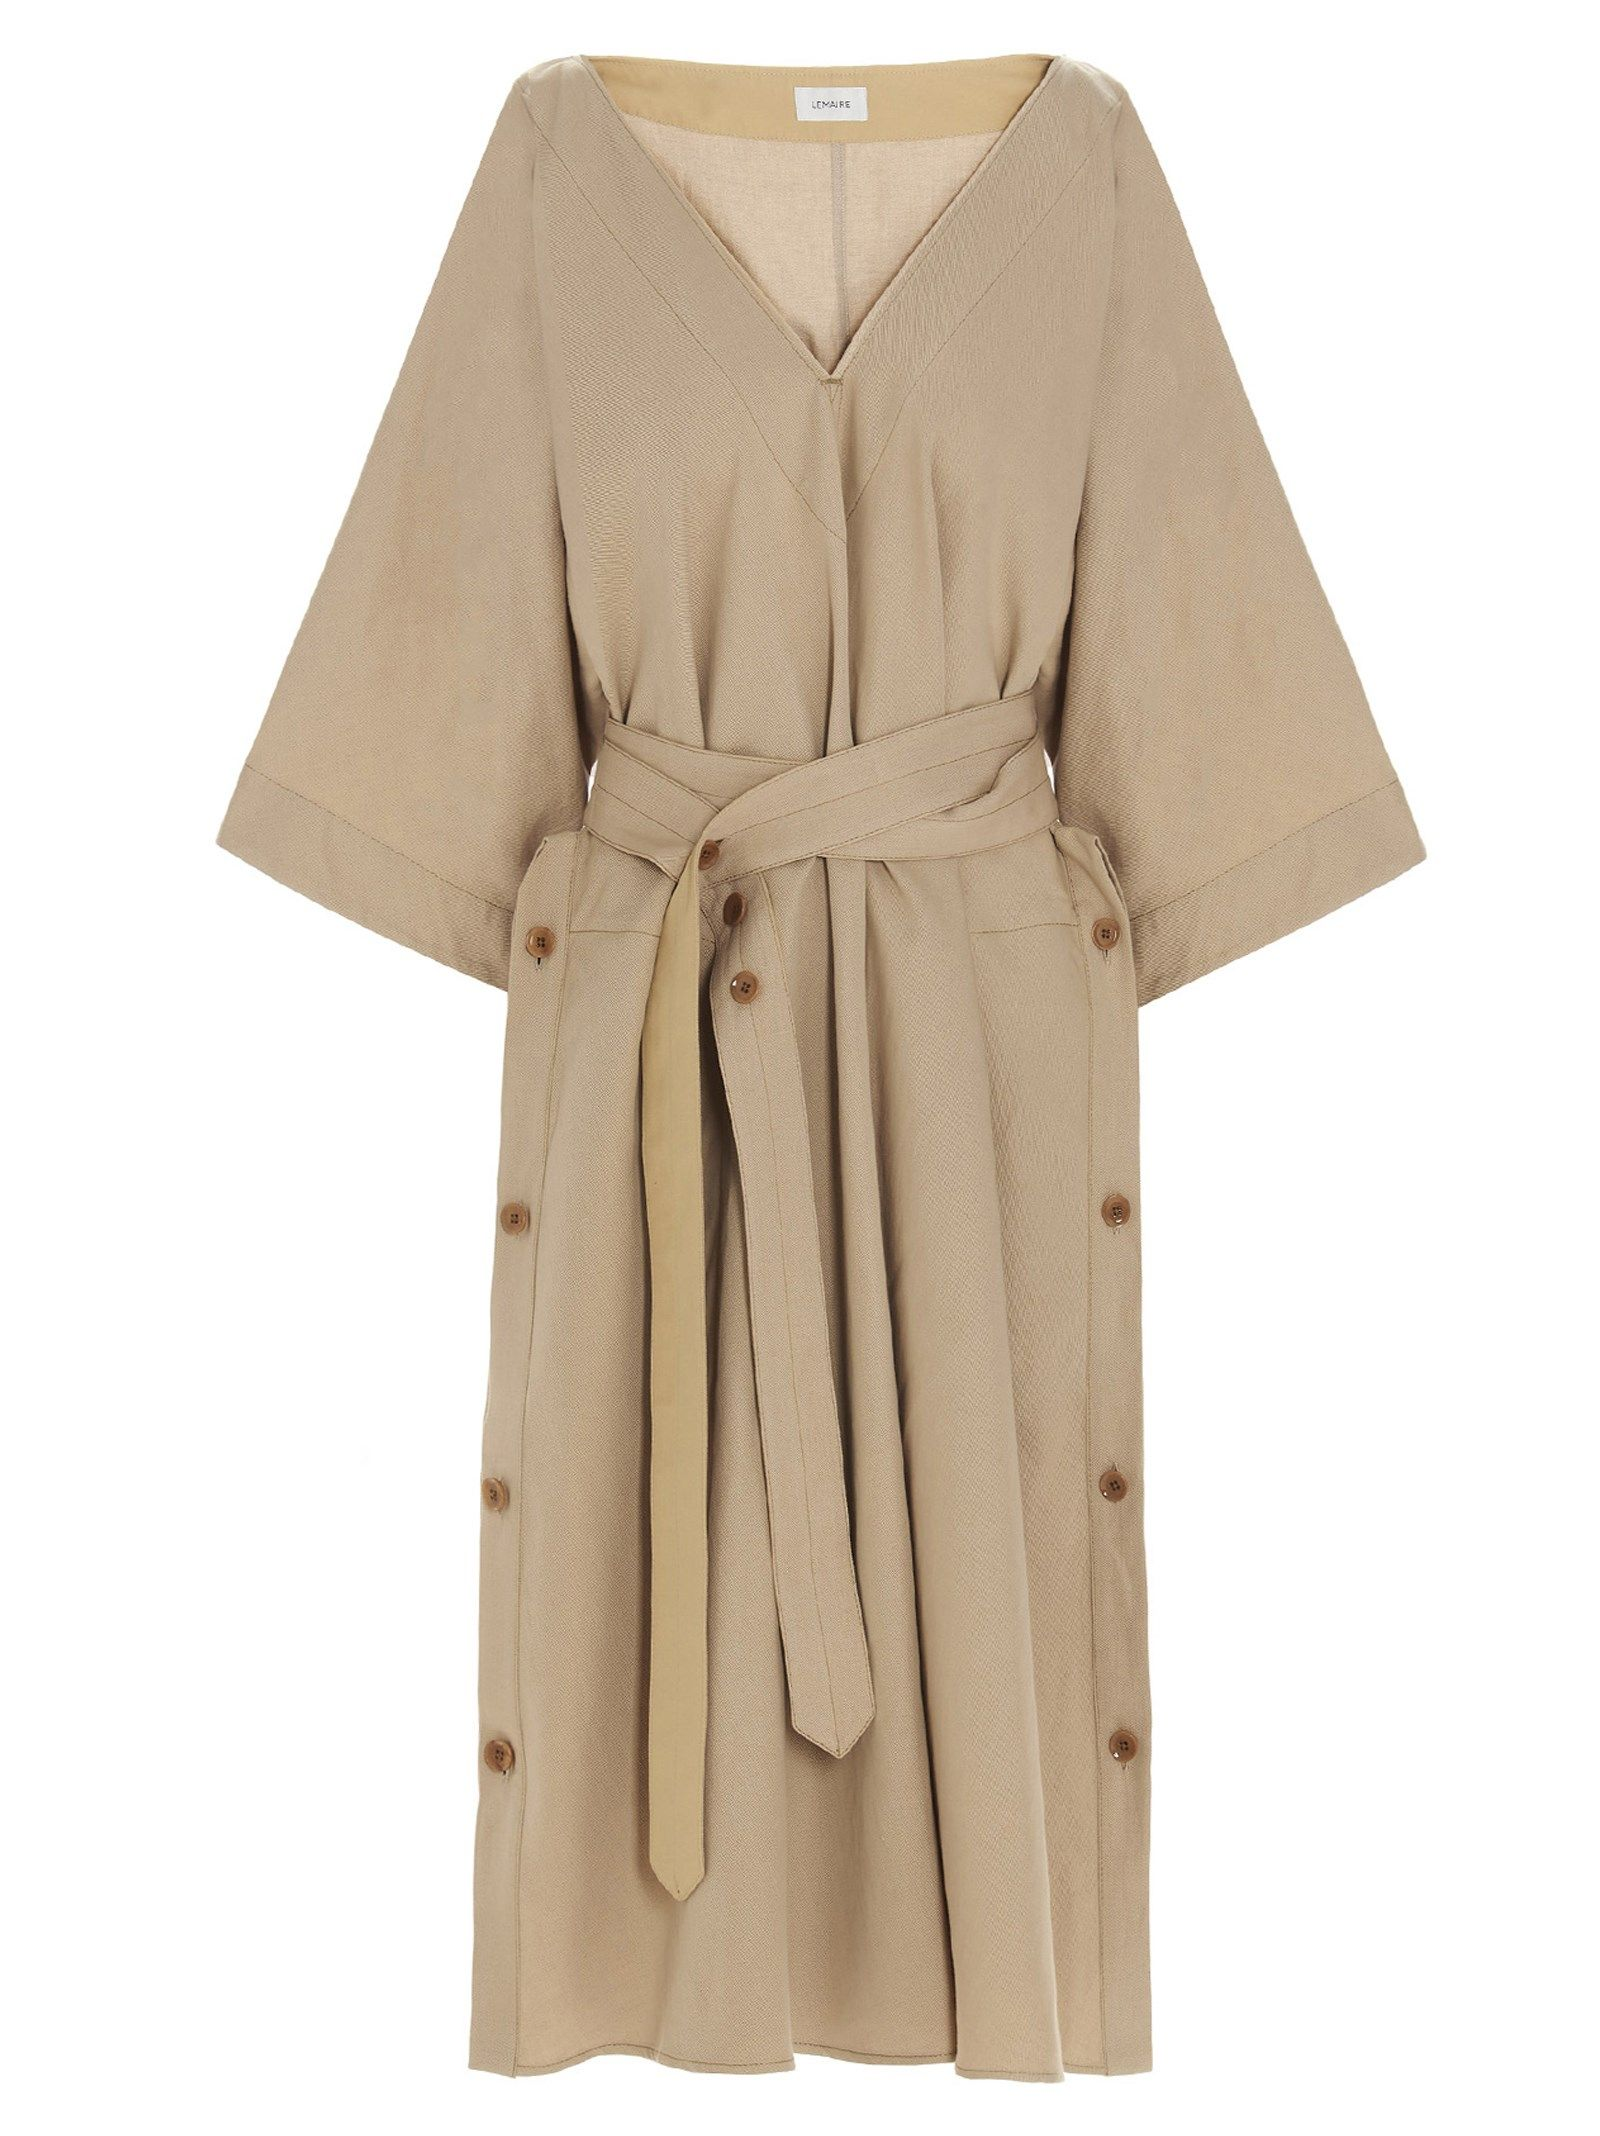 Lemaire Clothing LEMAIRE WOMEN'S W211DR285LF546215 BEIGE OTHER MATERIALS DRESS